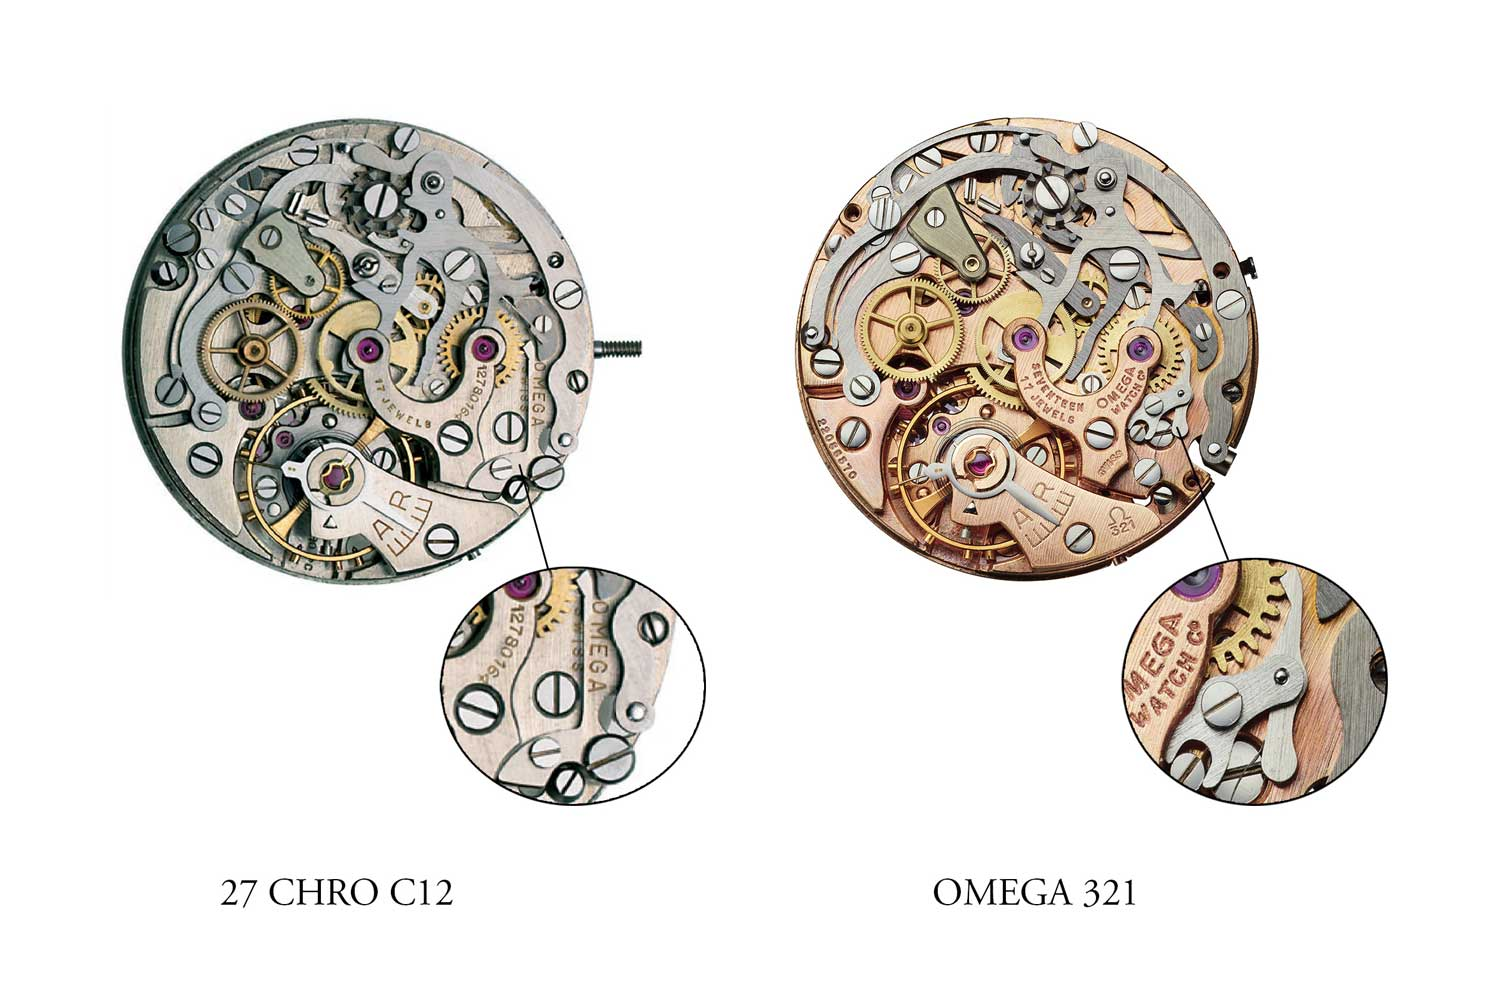 The Complete History of the Chronograph Movement-Lemania CH27.